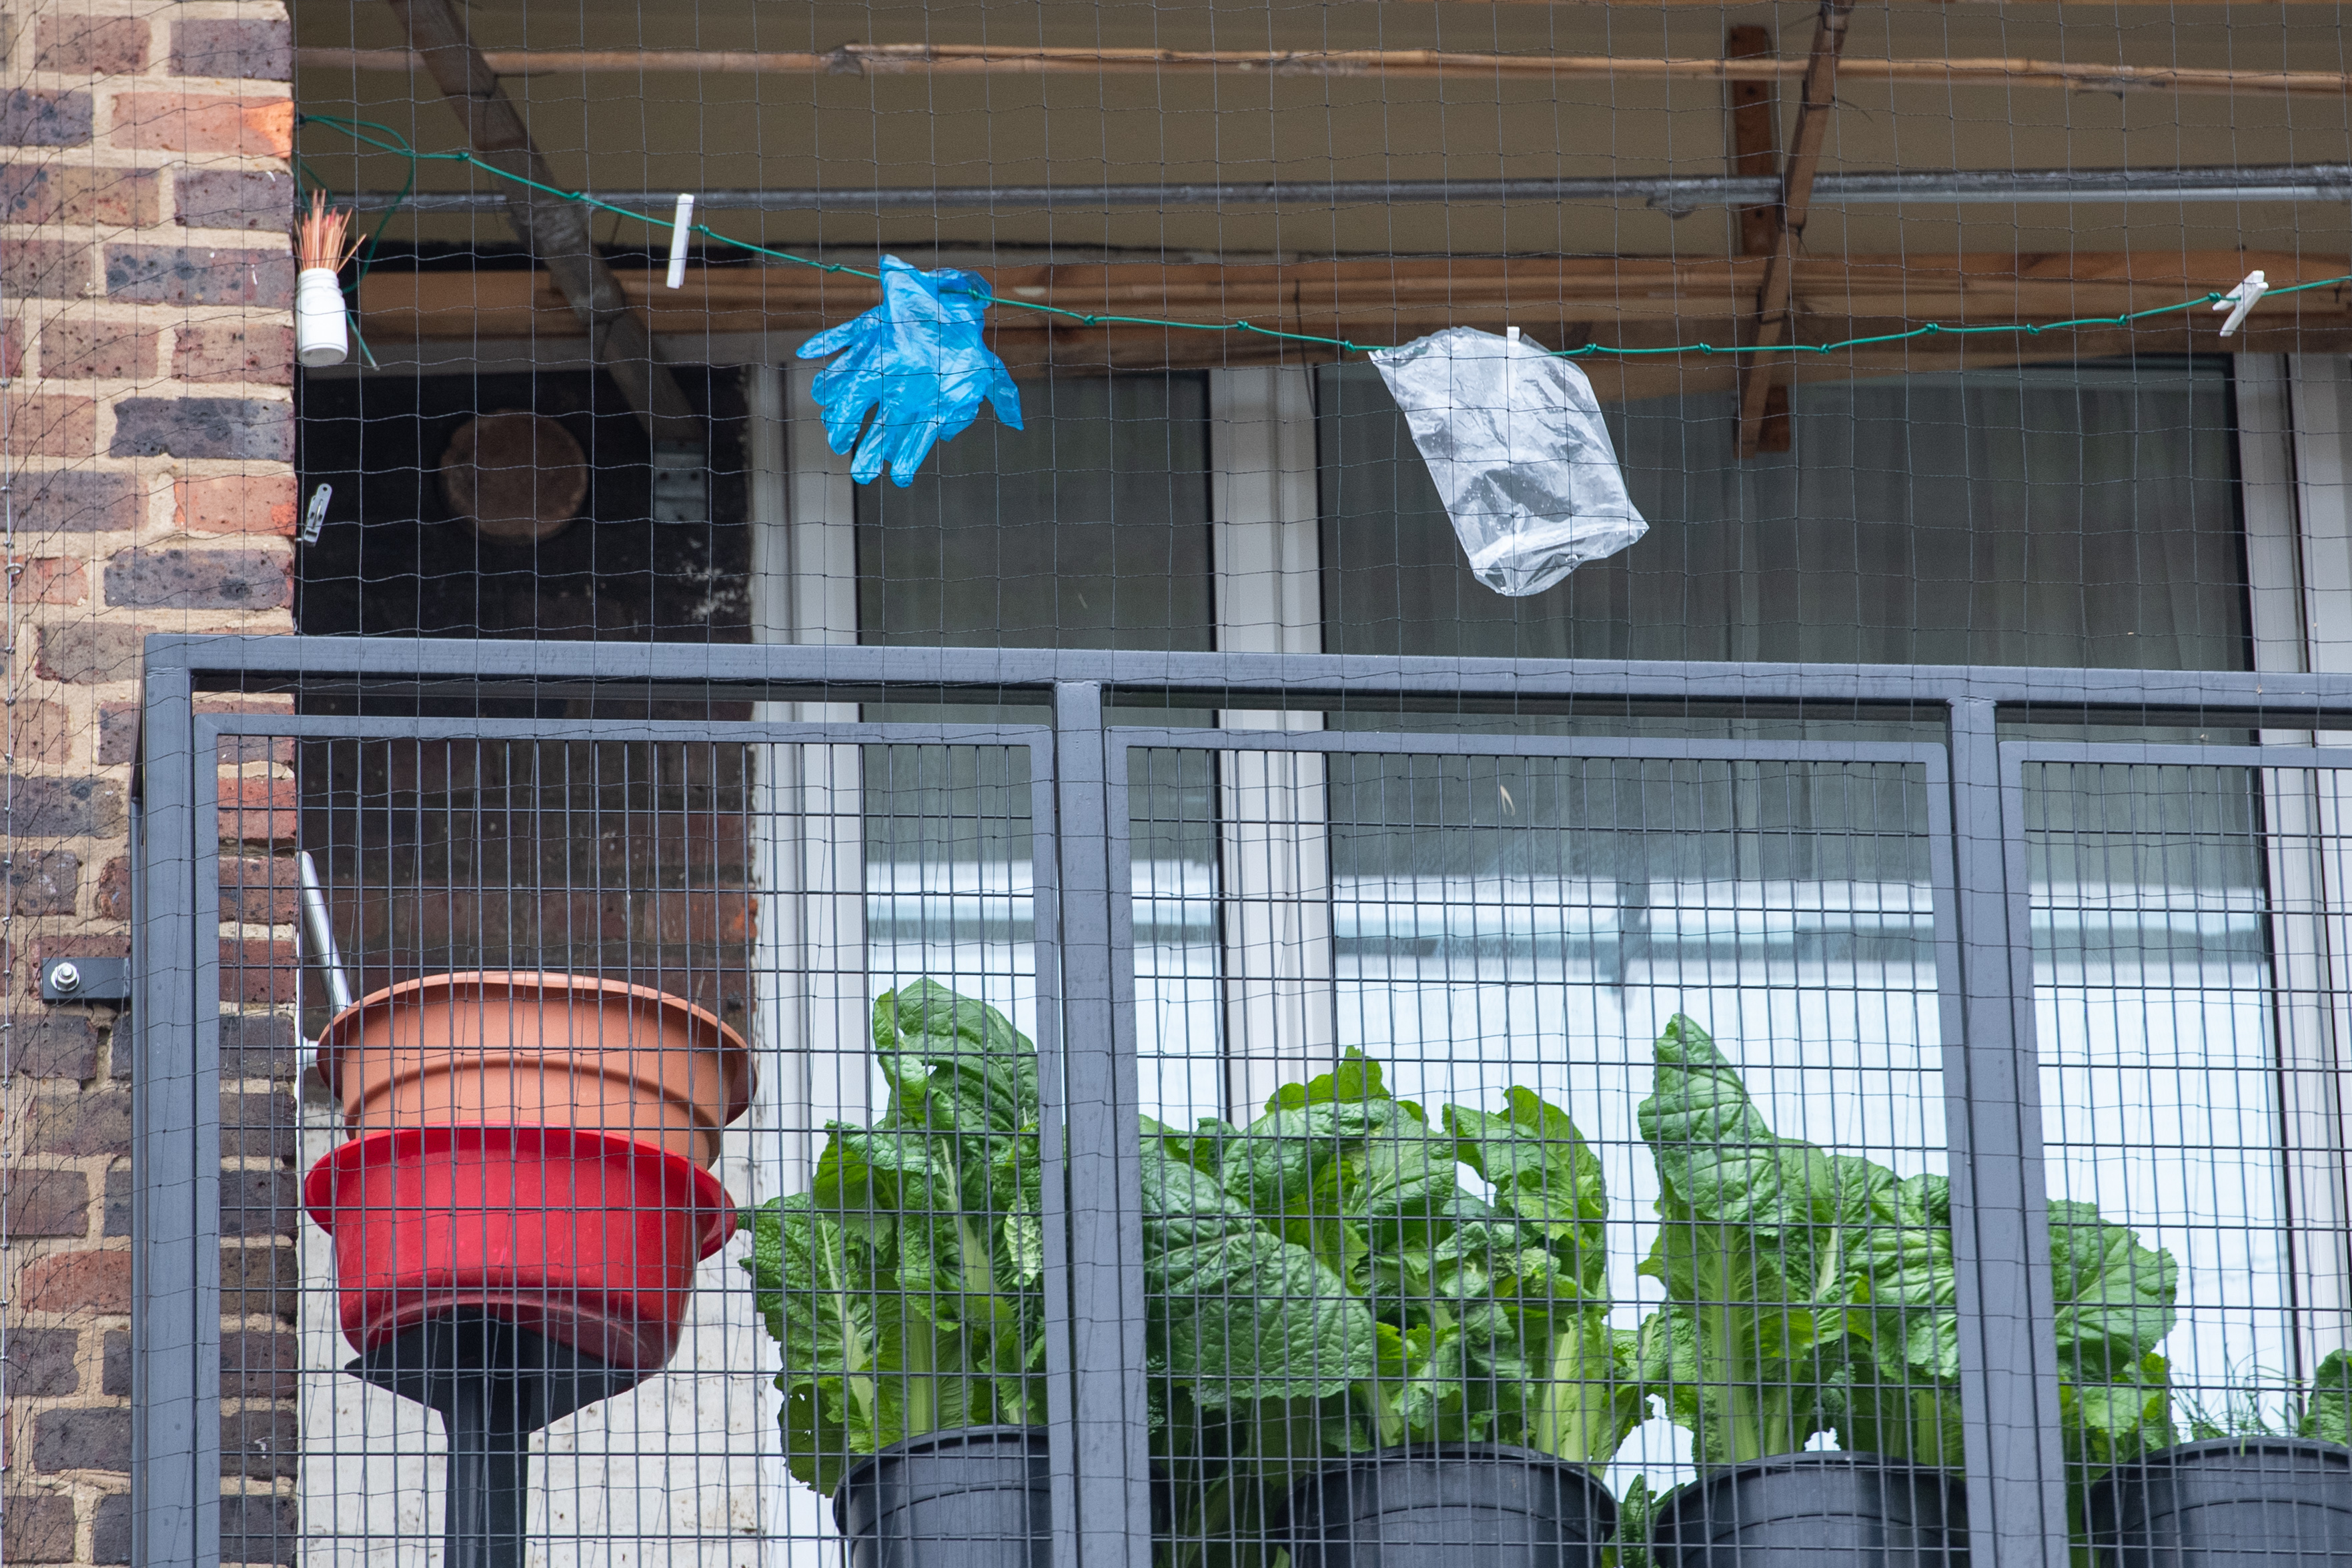 Disposable gloves pegged on a washing line in south London, as the UK continues in lockdown to help curb the spread of coronavirus.